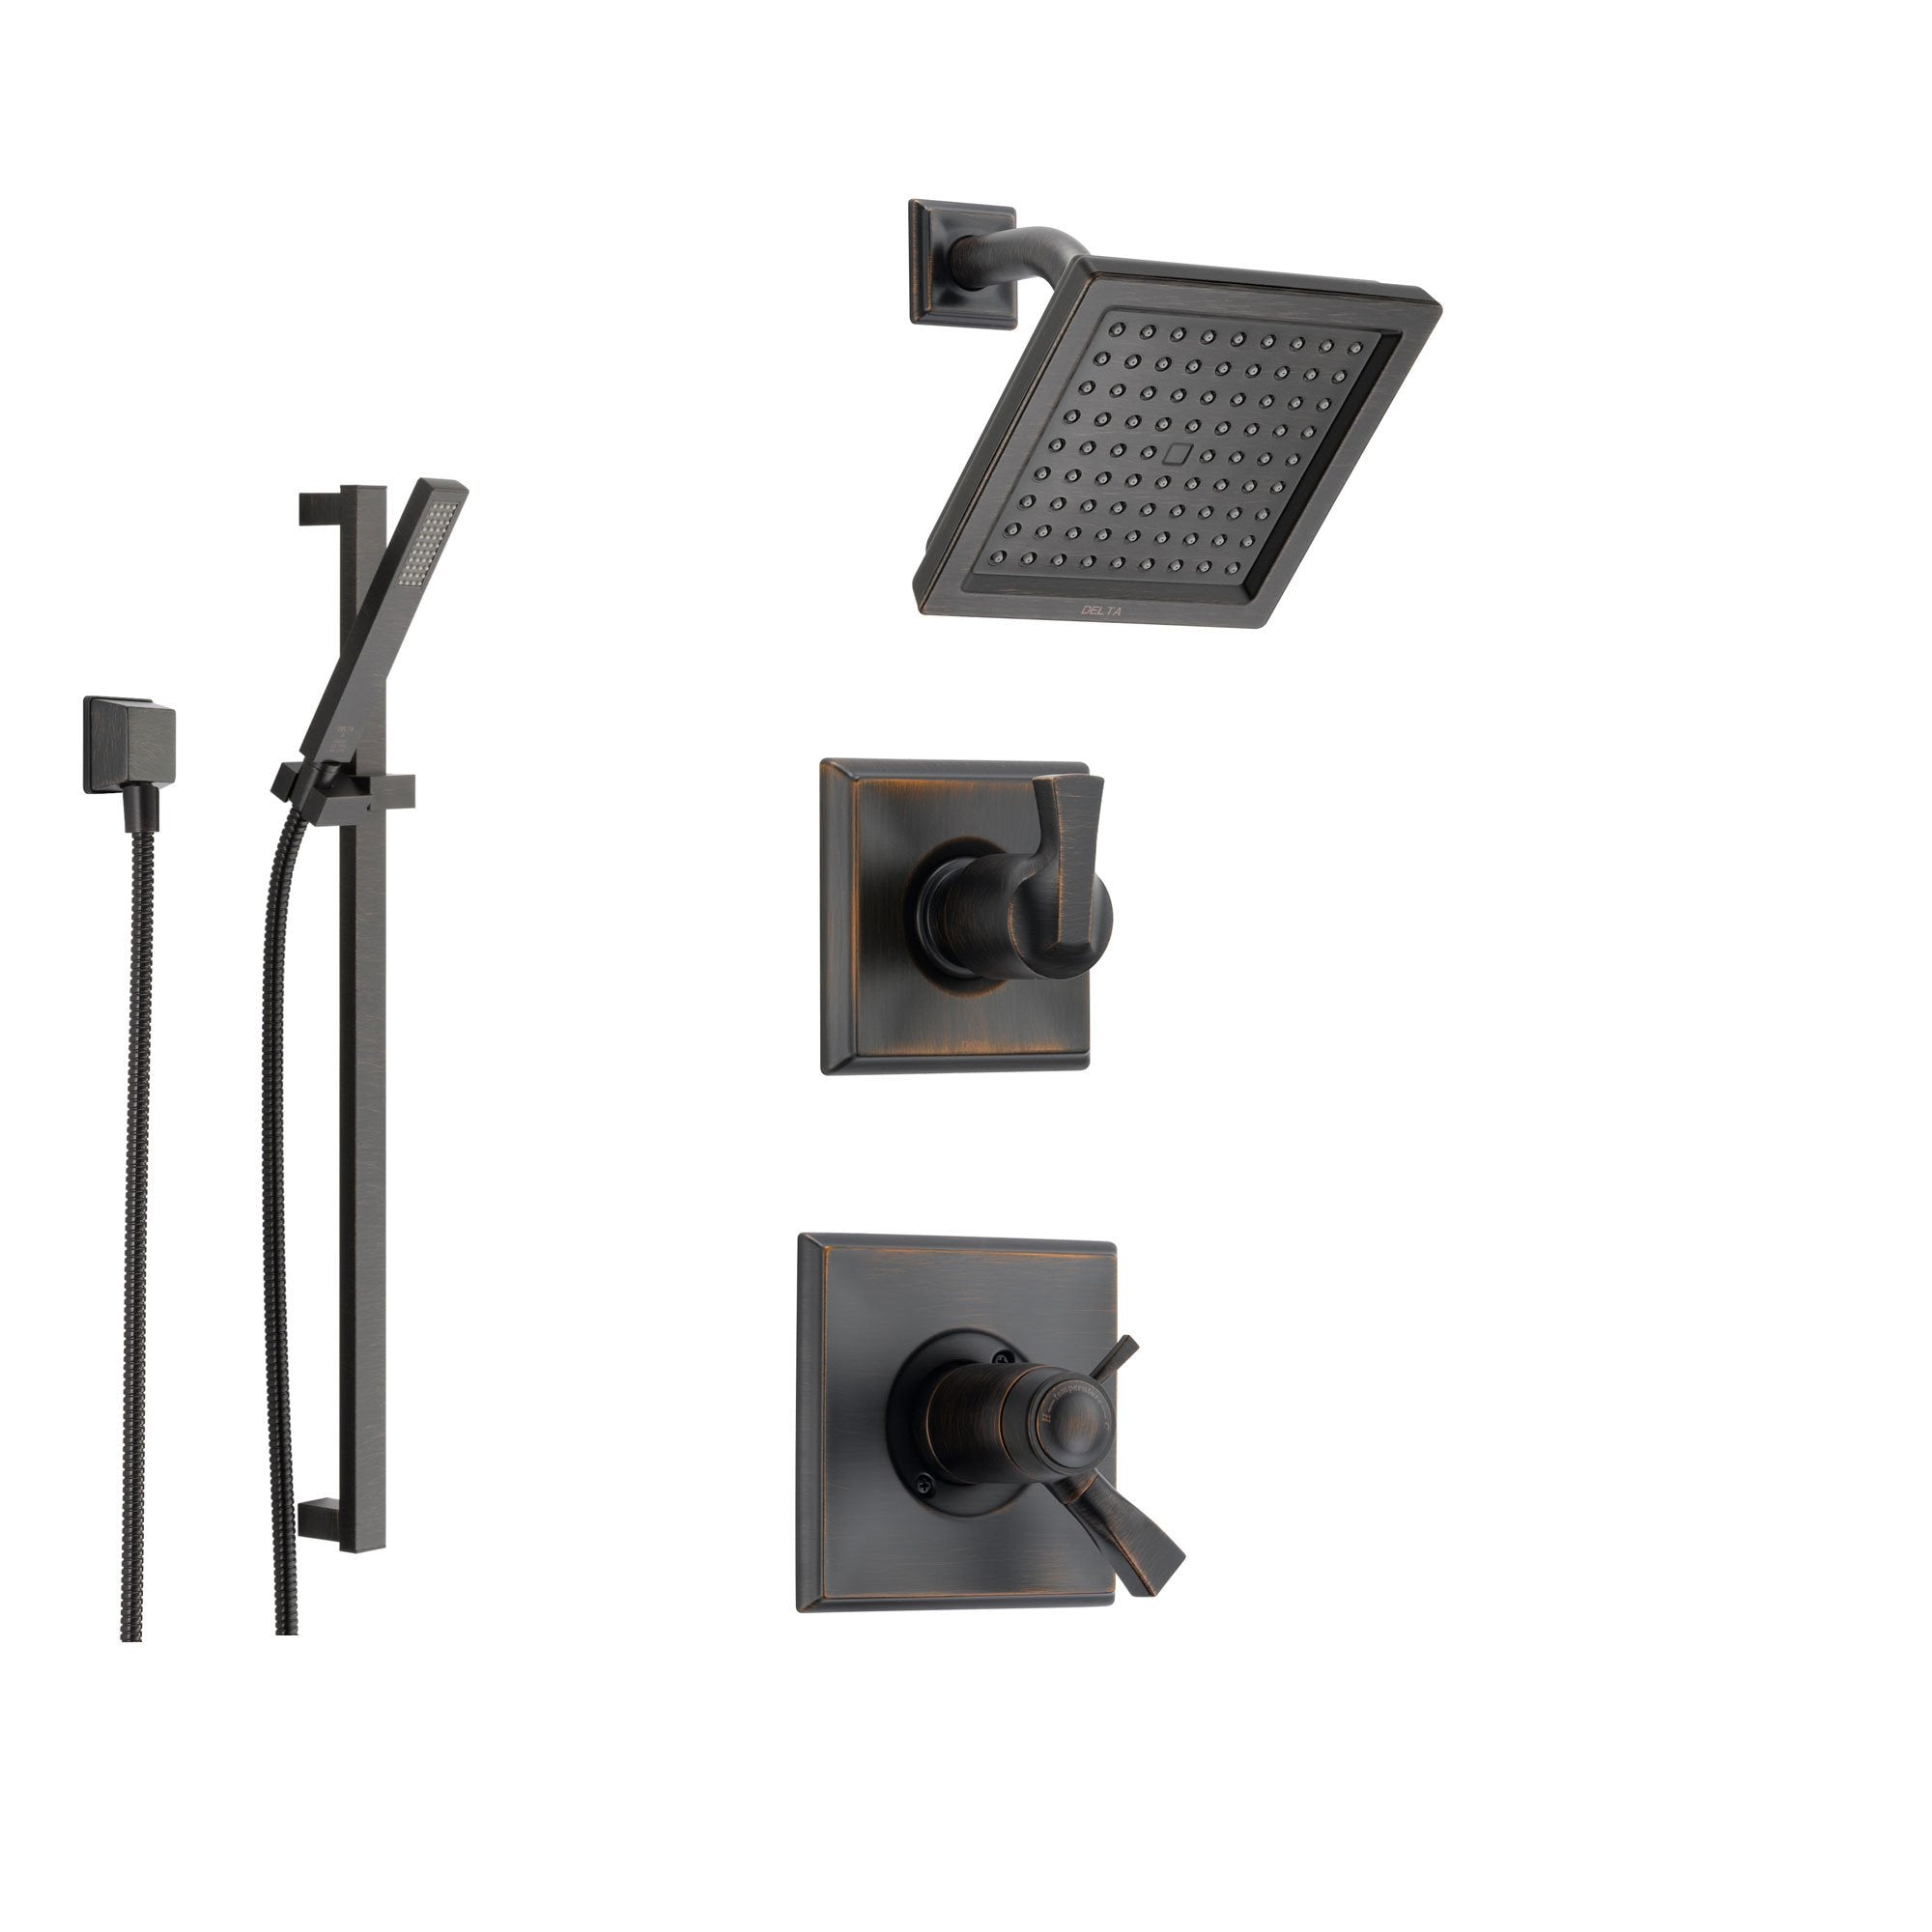 Delta Dryden Venetian Bronze Shower System with Thermostatic Shower Handle, 3-setting Diverter, Modern Square Showerhead, and Handheld Shower SS17T5185RB